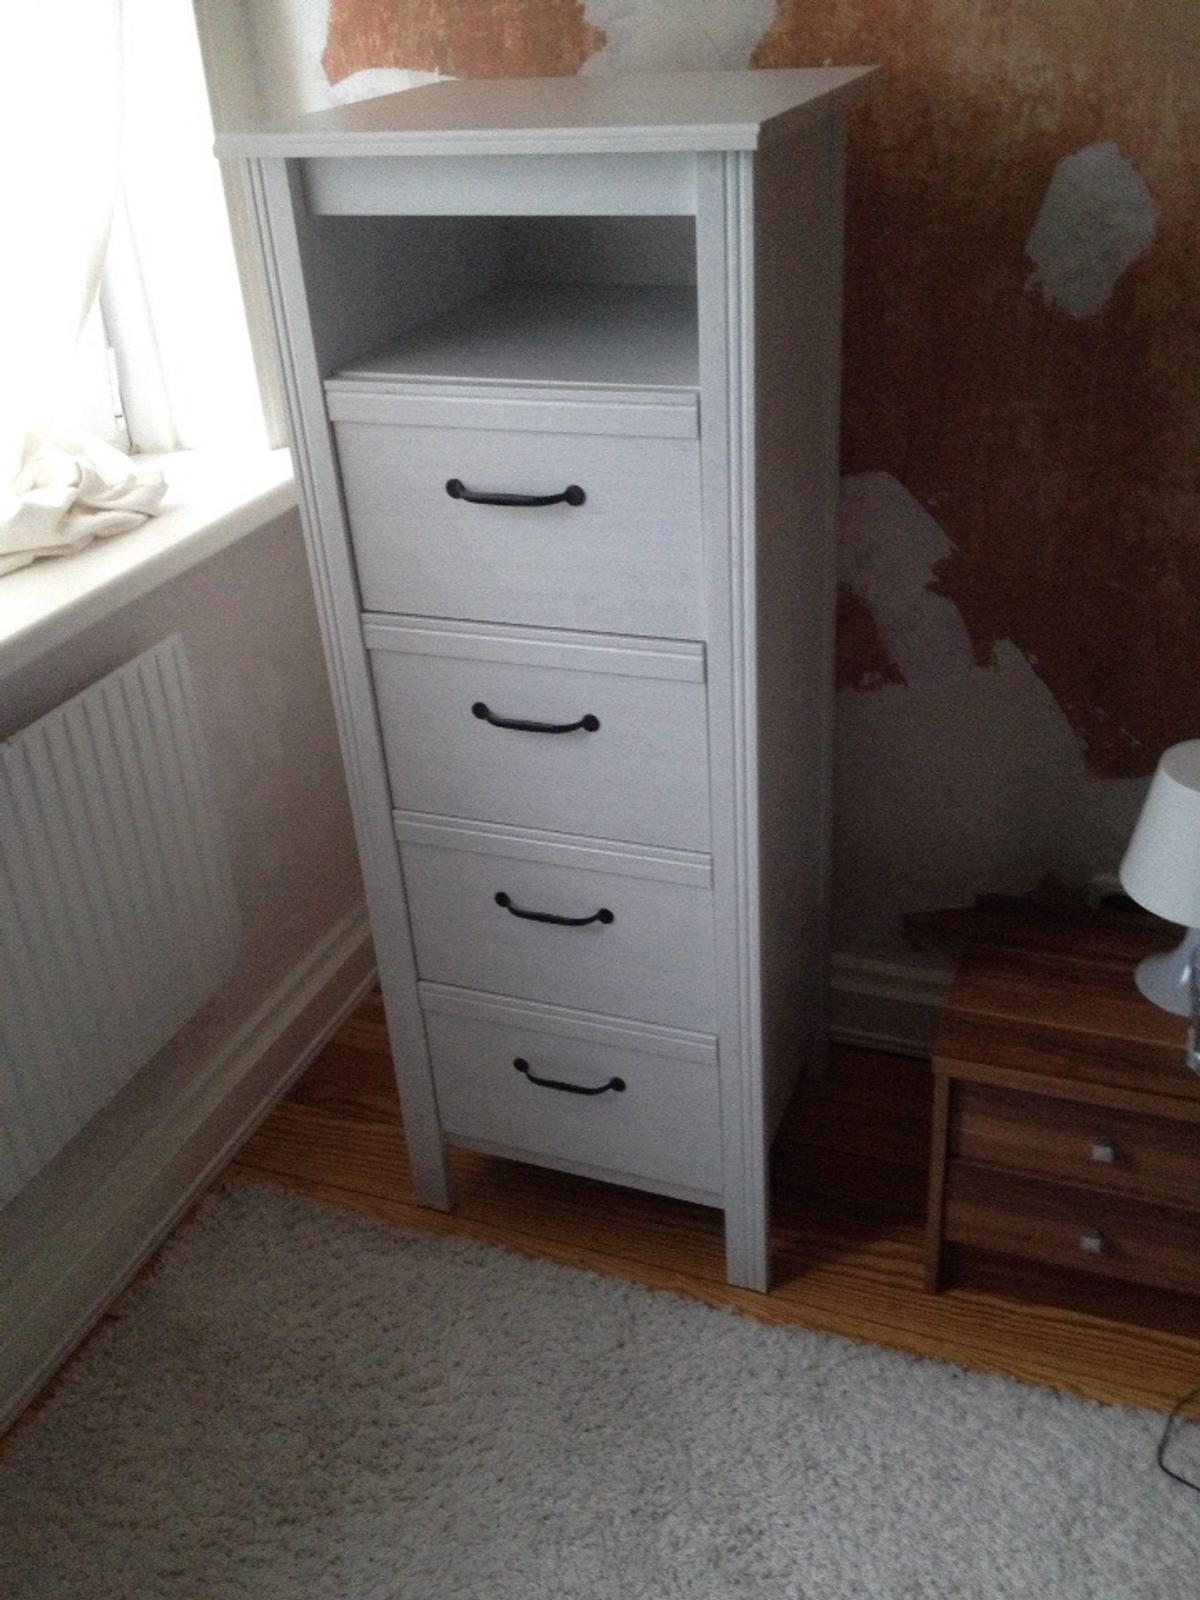 Brusali Ikea Kommode Schlafzimmer Weiss In 22047 Hamburg For 55 00 For Sale Shpock